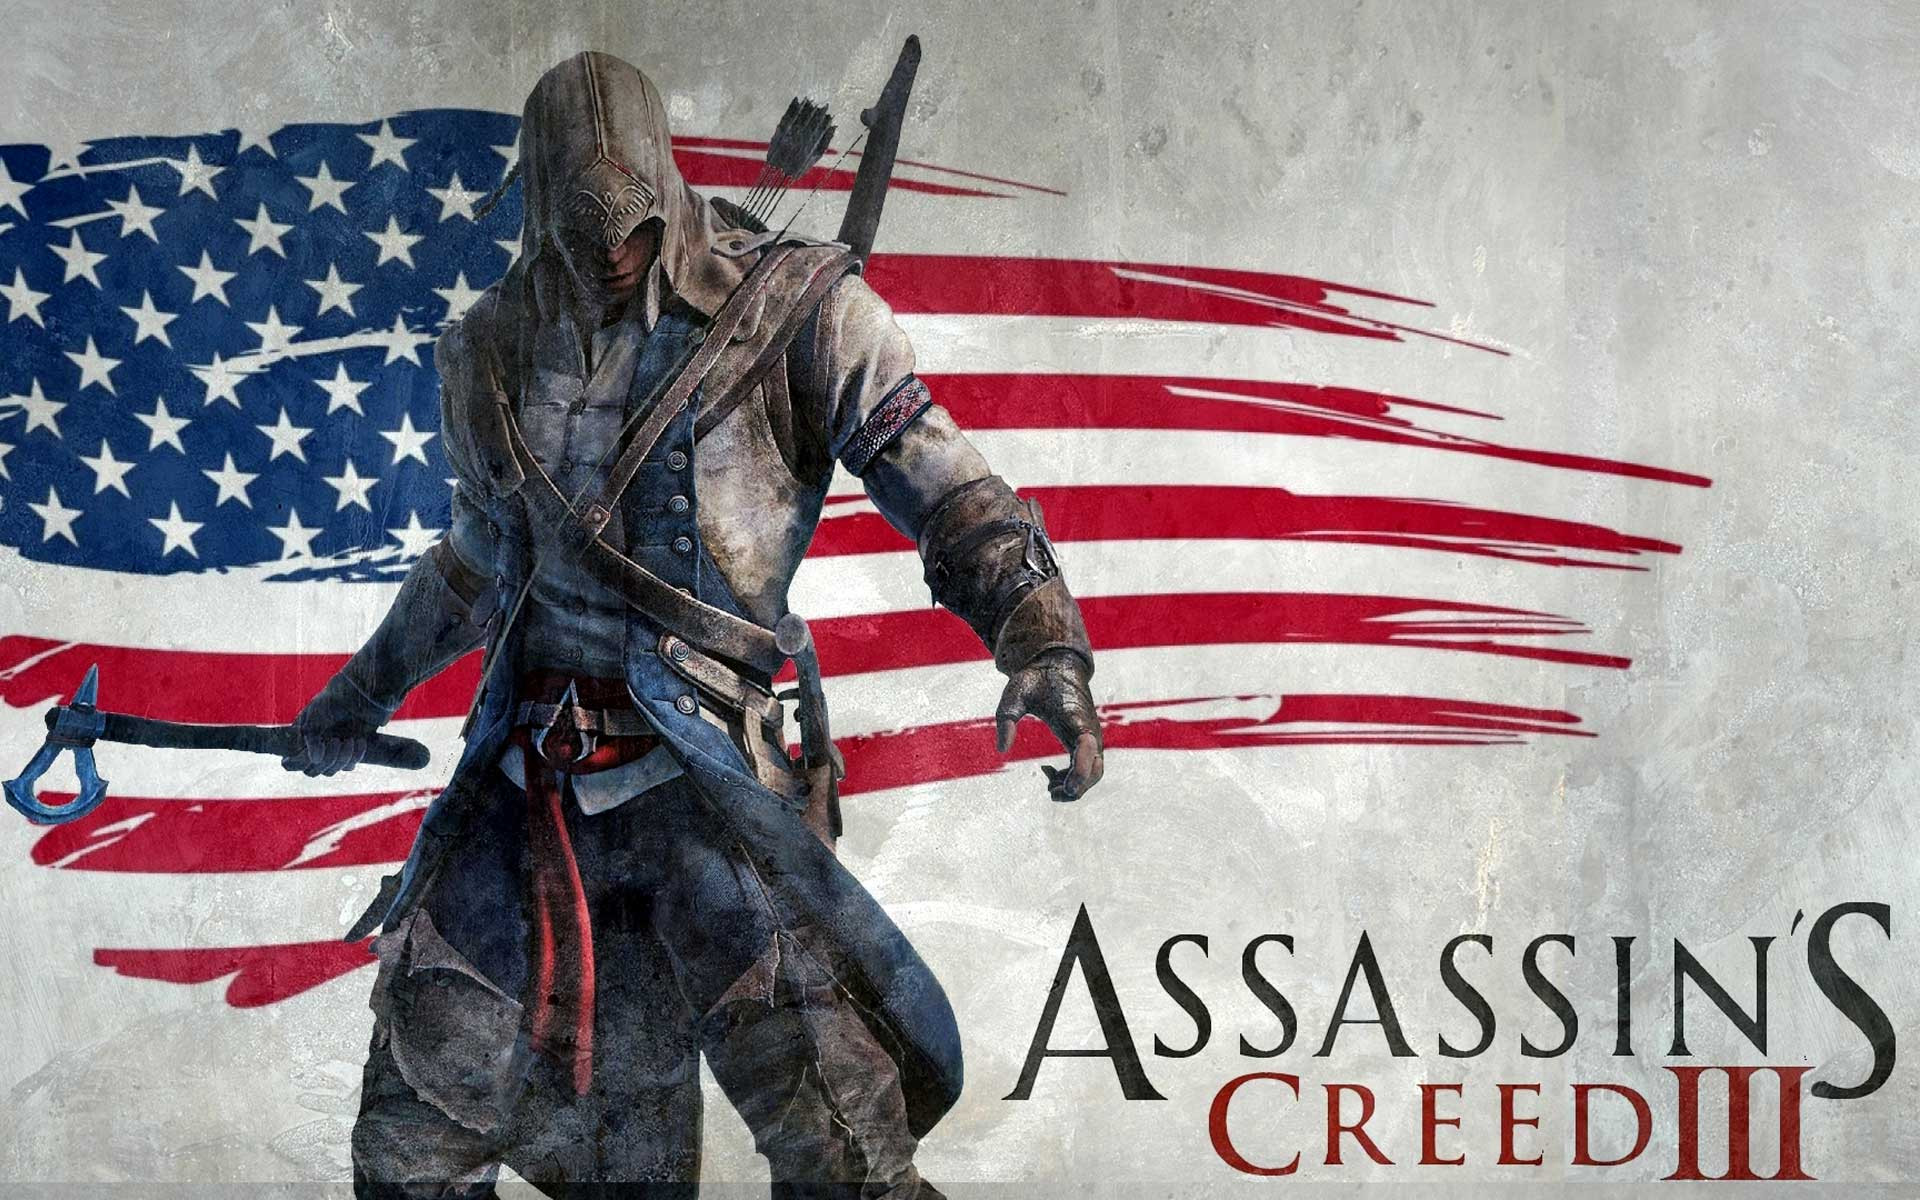 1355329720_assassinscreed3connorwallpaper.jpg